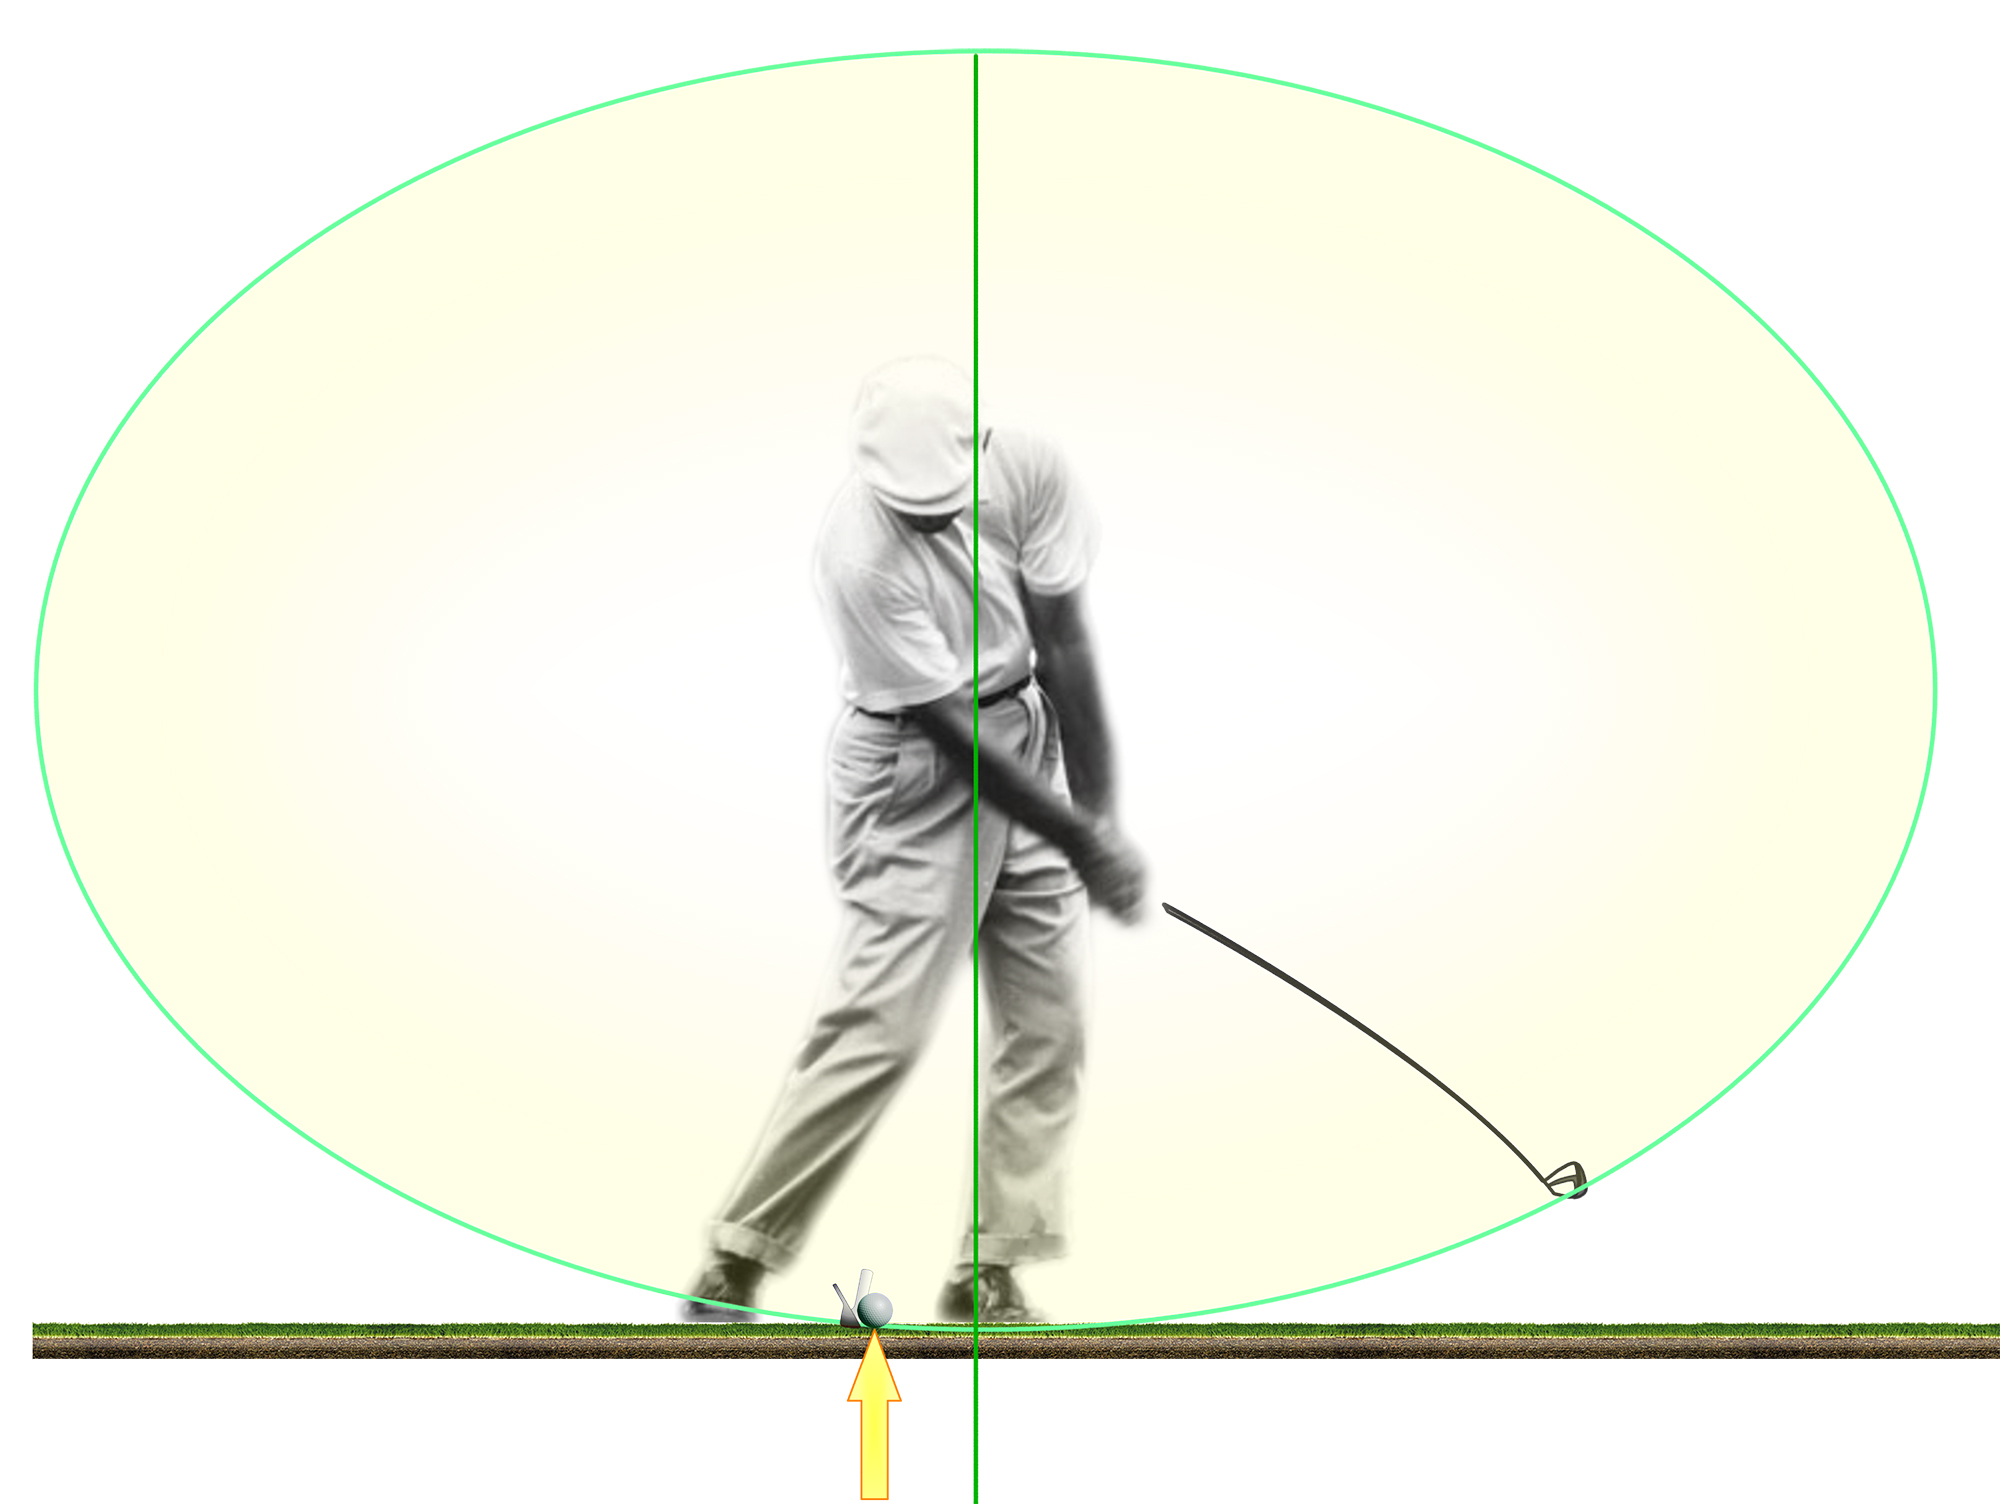 carnet de visualisation : golfeur au fer 9